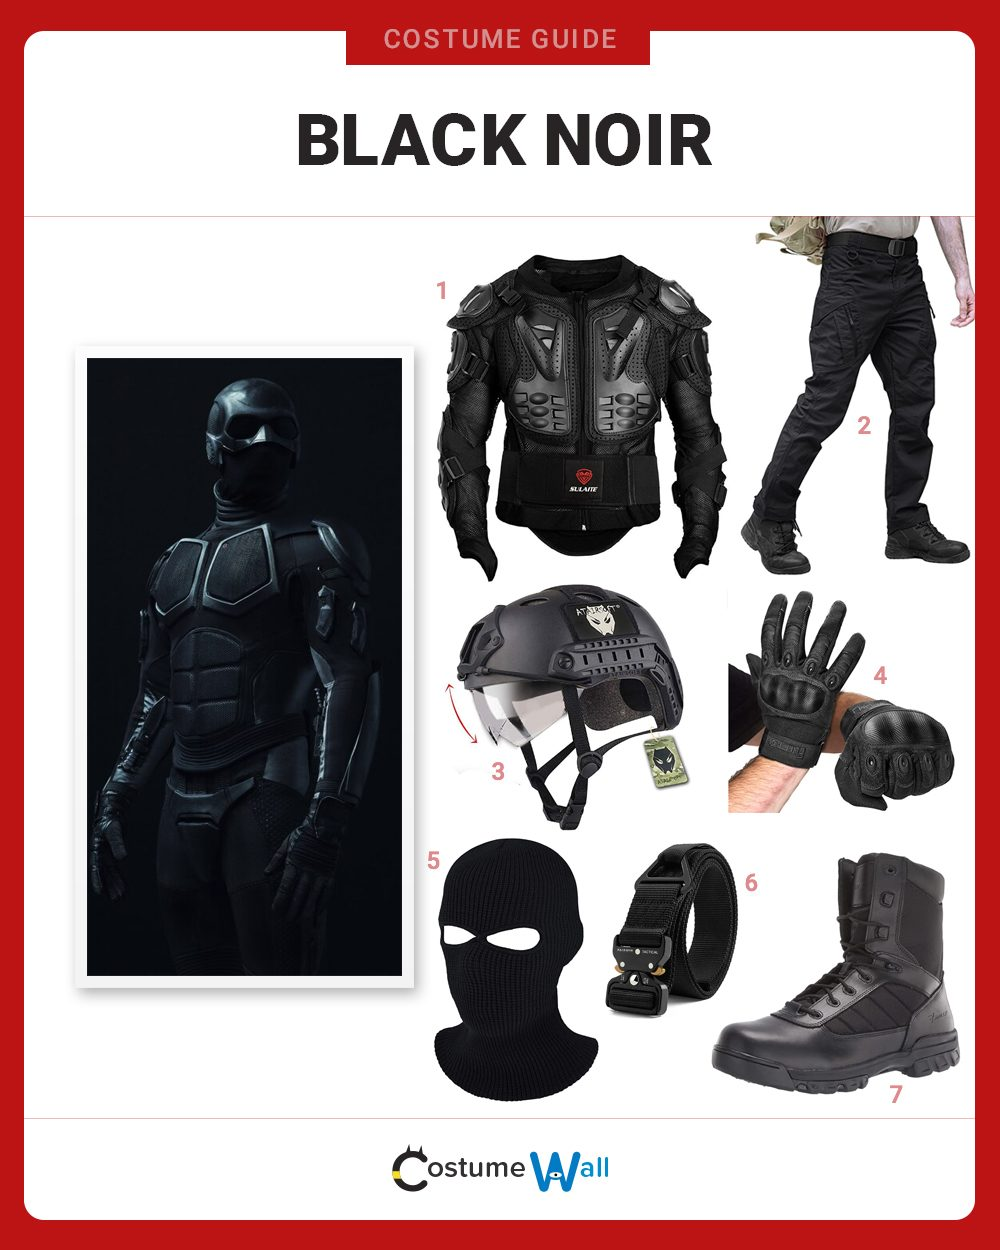 Black Noir Costume Guide